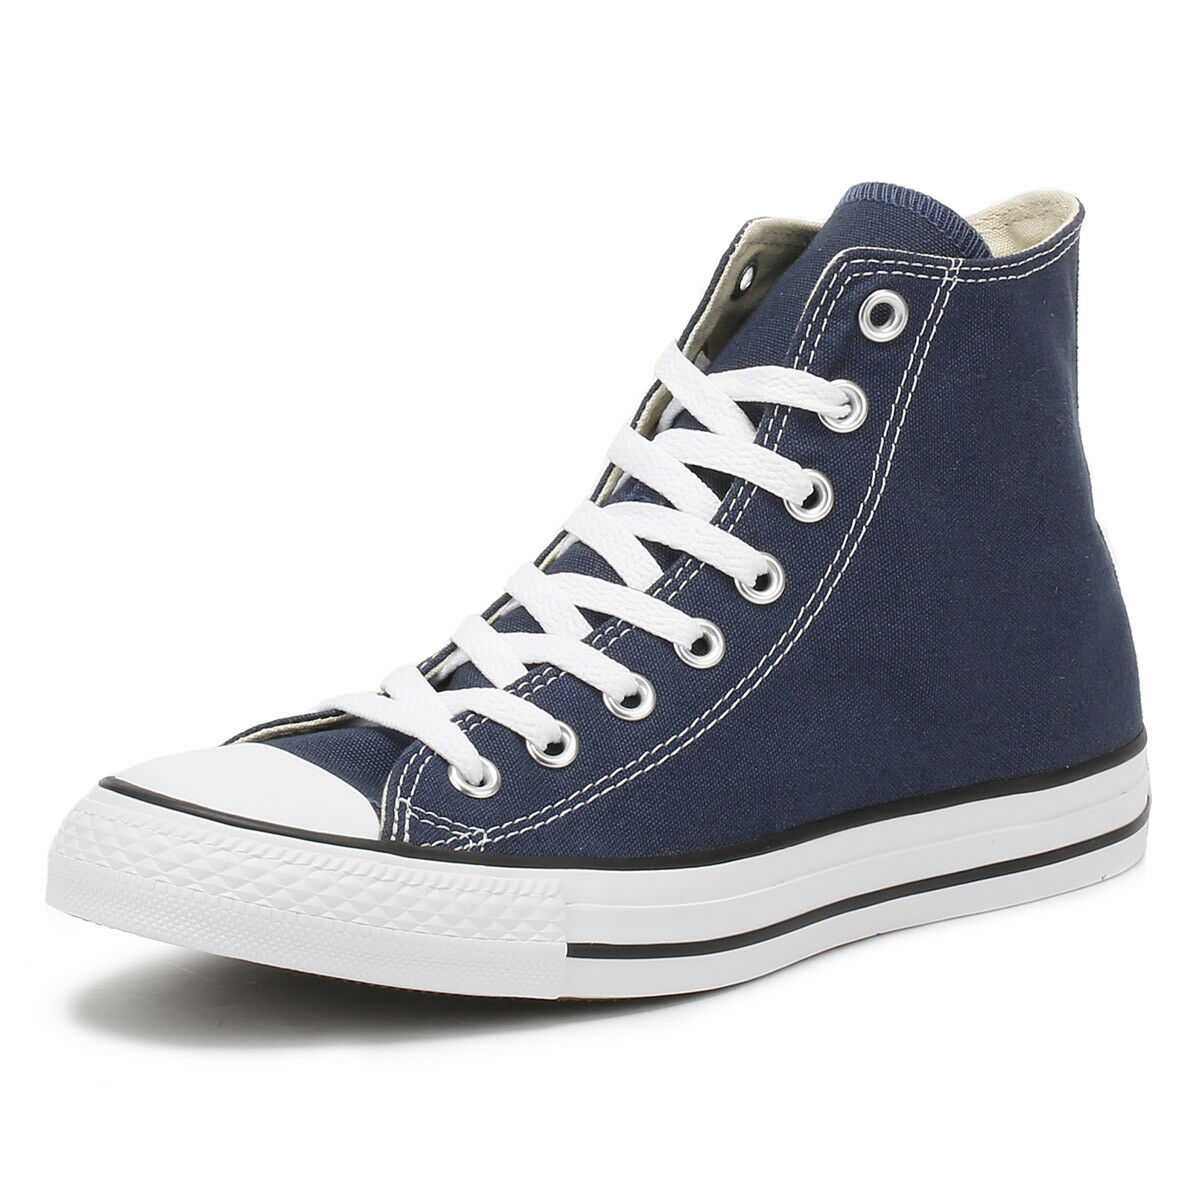 Converse Hombre Mujer Trainers Navy Azul All Star Sneakers Hi Tops Unisex Canvas Sneakers Star 86754b